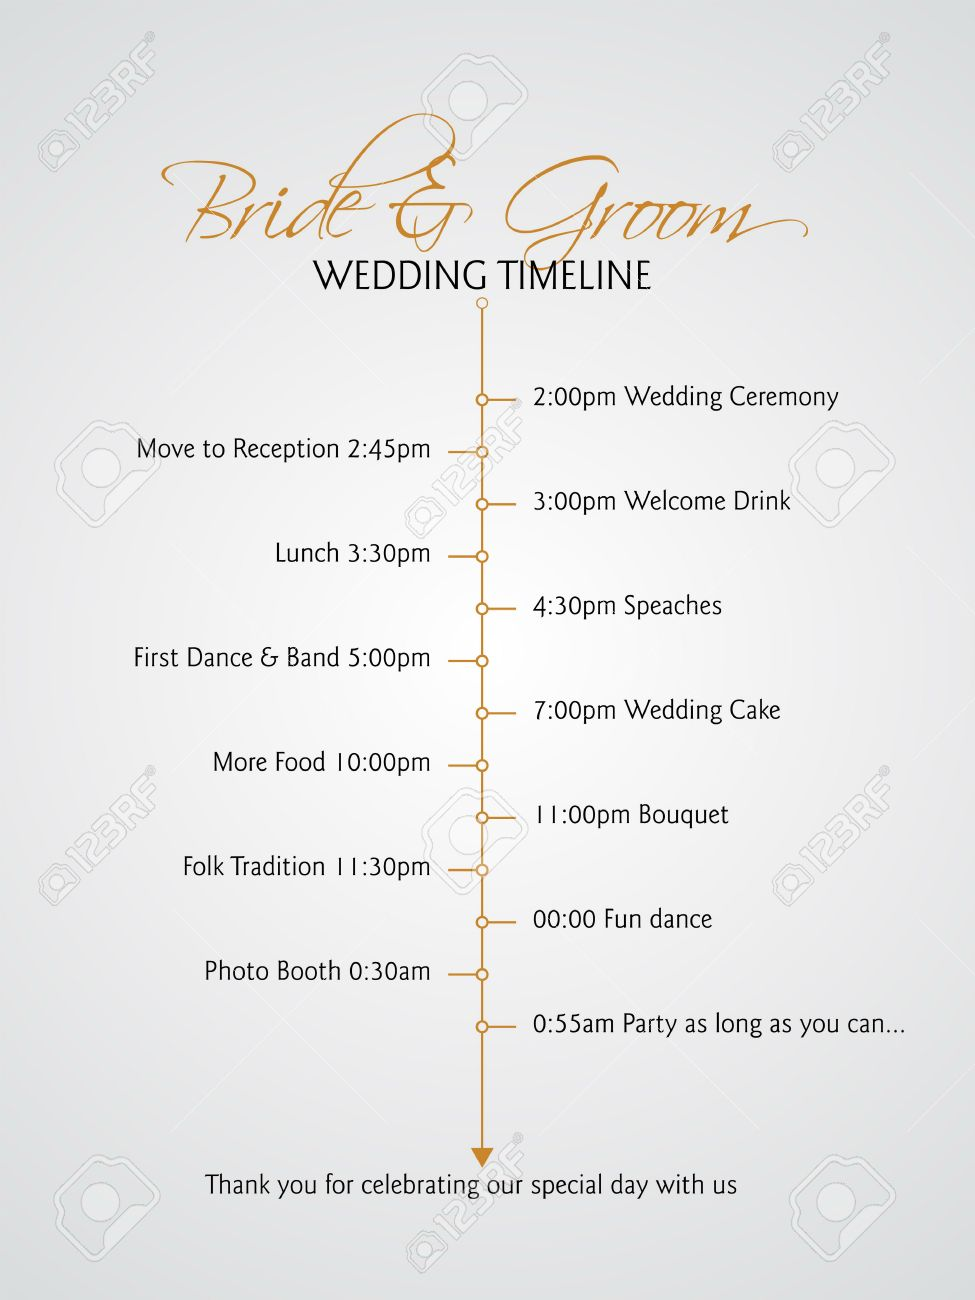 Simple Infographics Style Wedding Timeline Royalty Free Cliparts ...